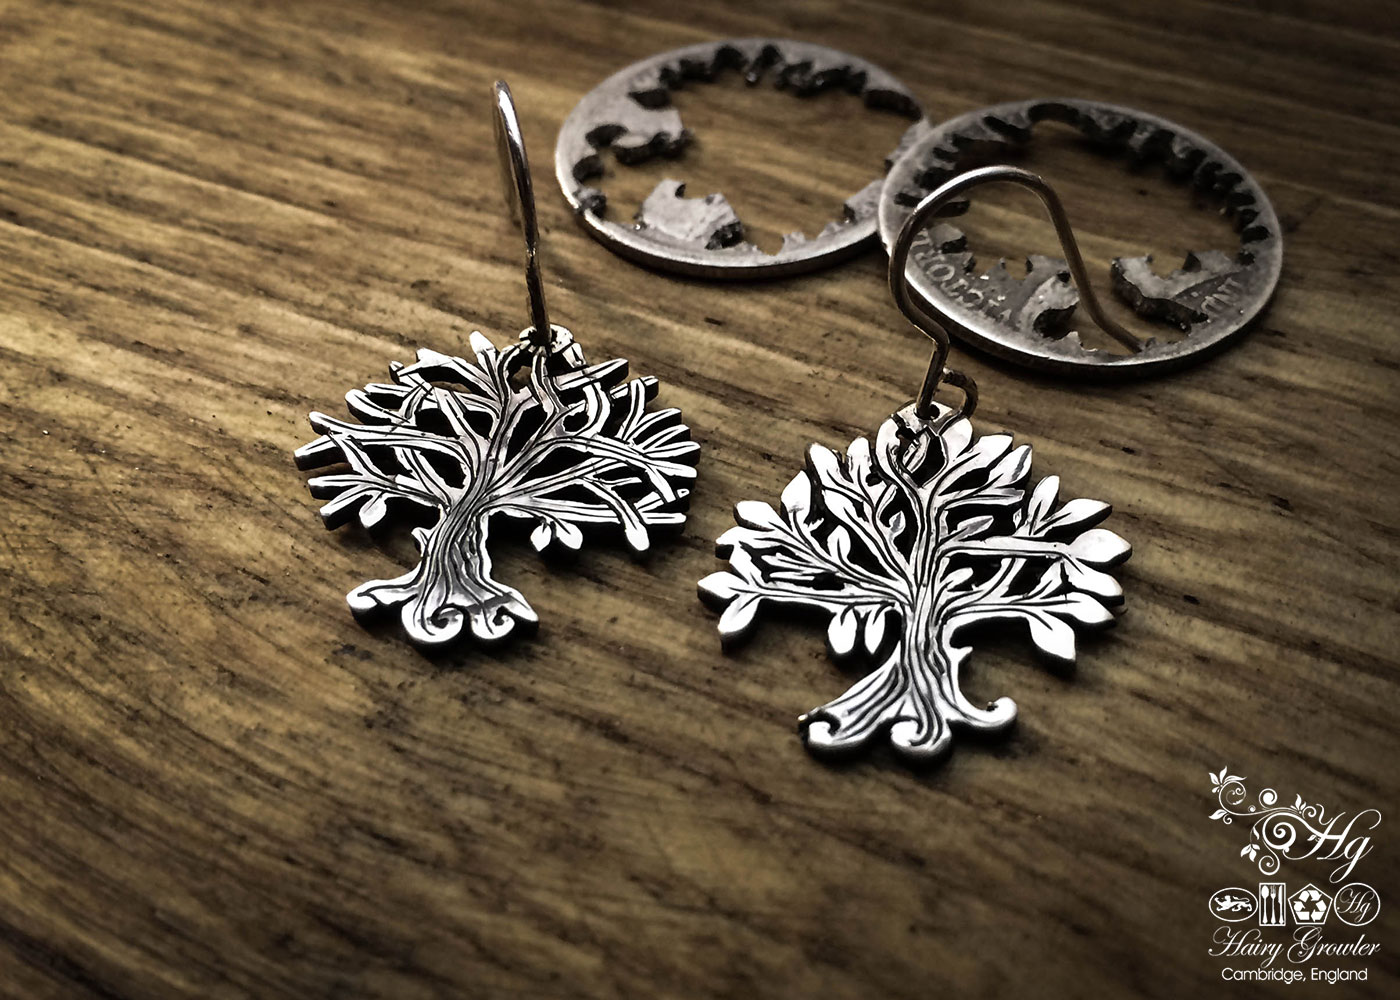 handcrafted and recycled silver Georgian shilling tree of life earrings made in Cambridge